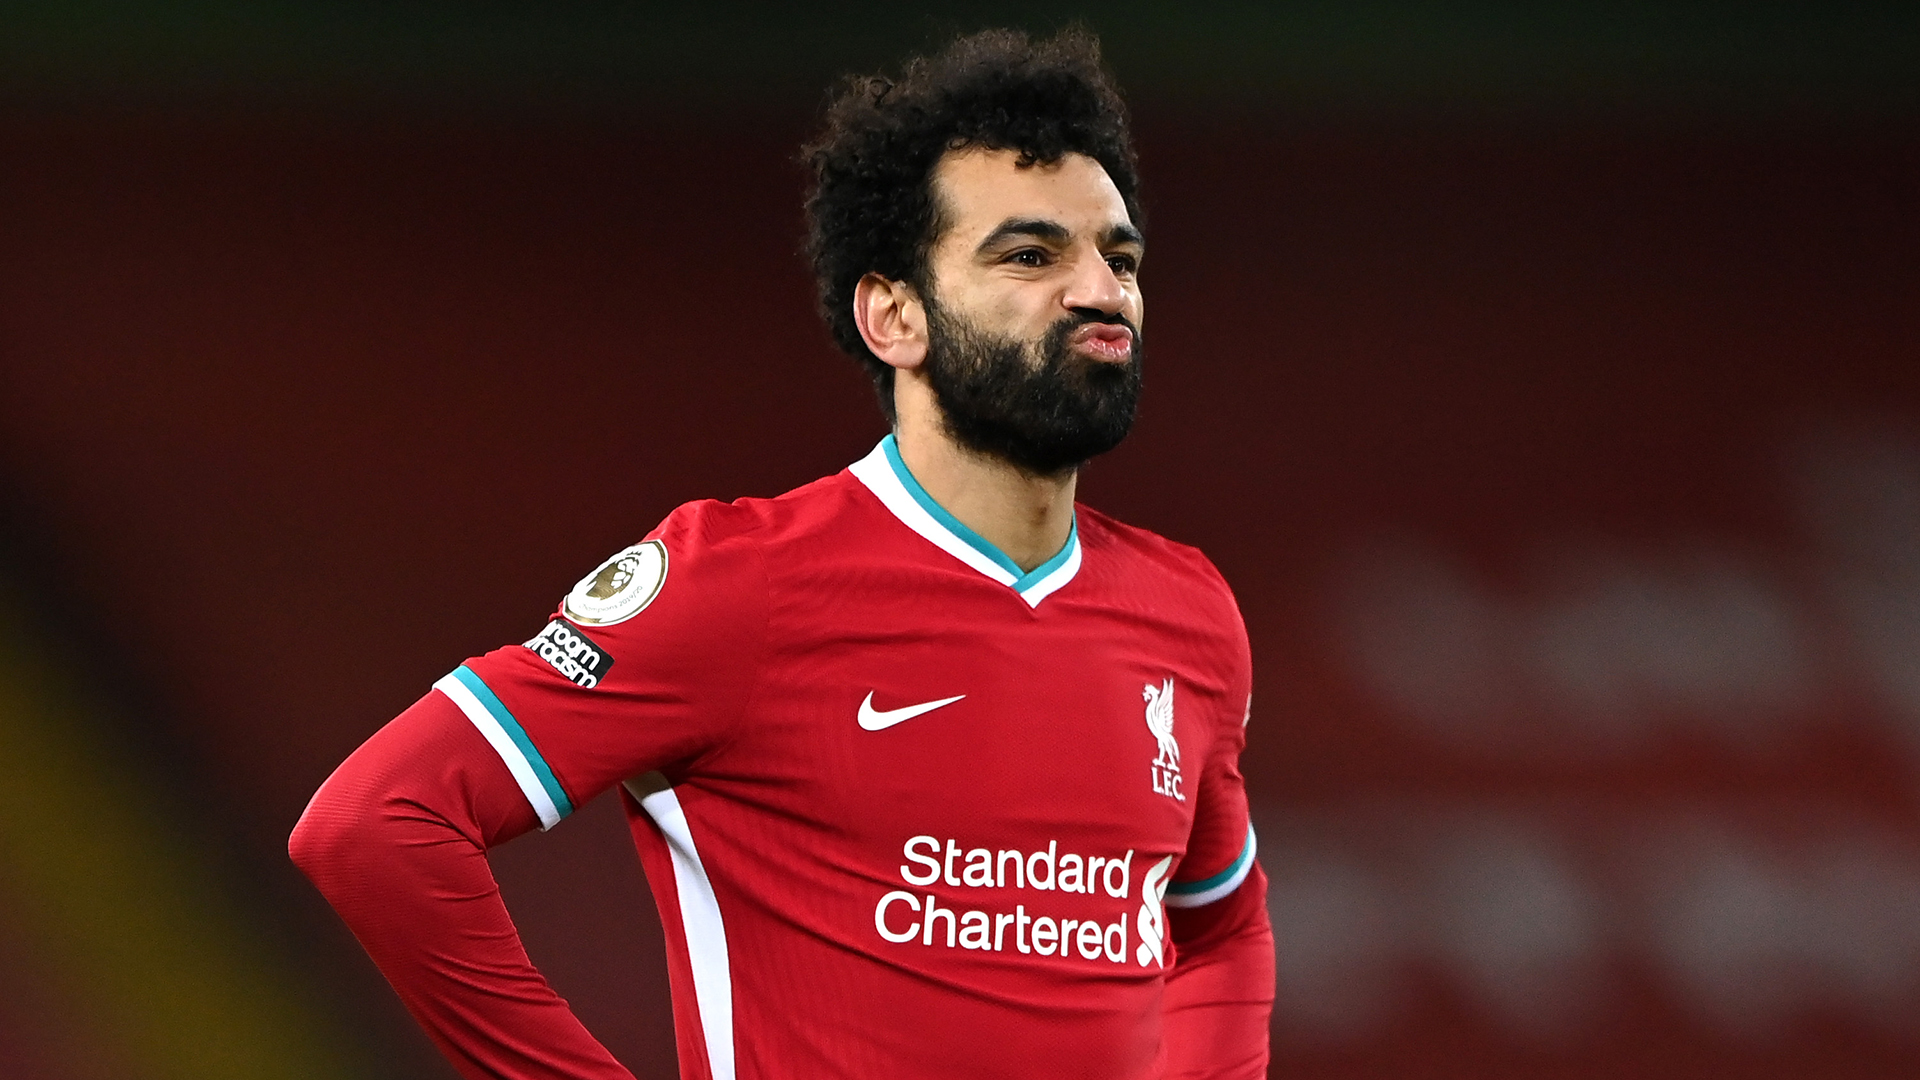 Salah urges Liverpool to ignore 'big picture' of Premier League struggles